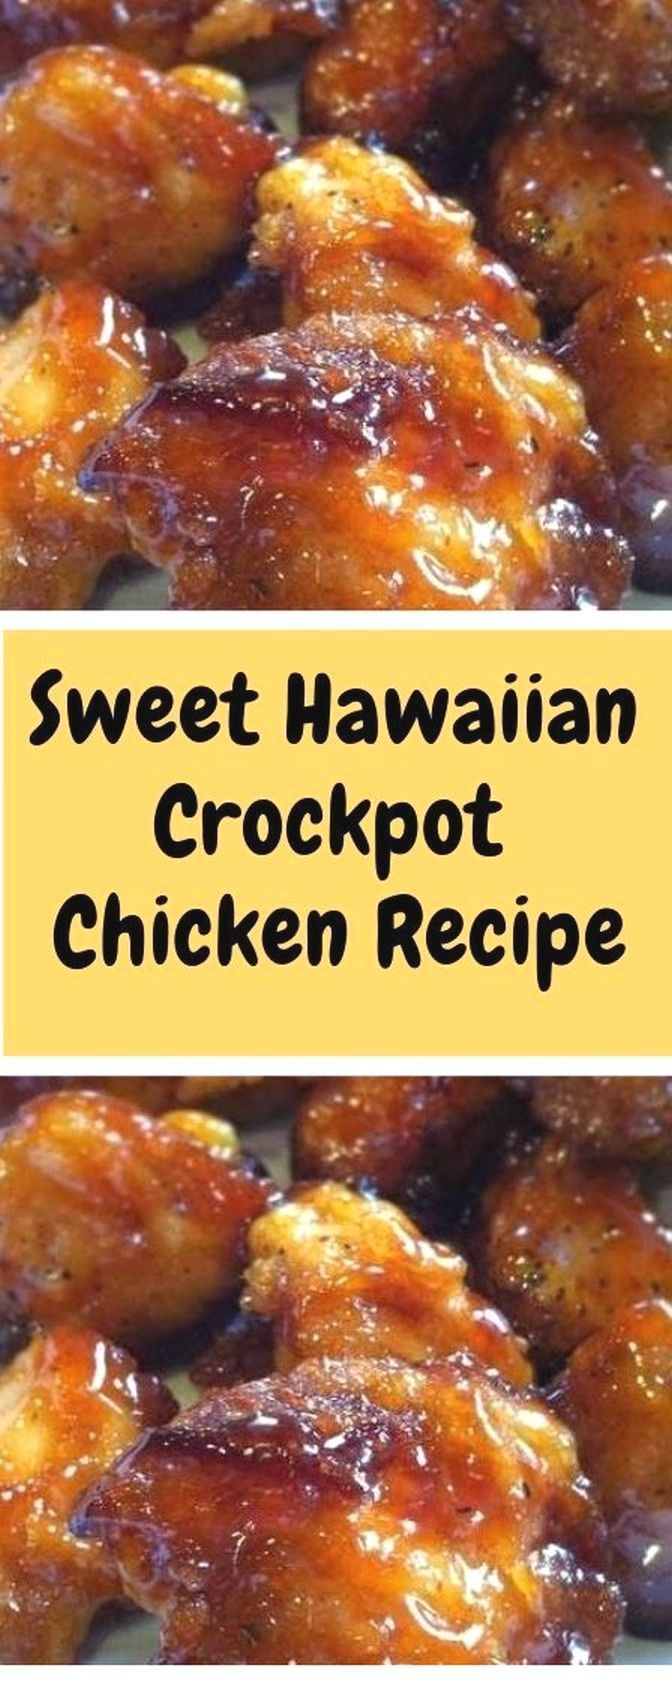 Sweet Hawaiian Crockpot Chicken Recipe | Chicken Recipes - #Chicken #Crockpot #Hawaiian #recipe #recipes #Sweet #hawaiianfoodrecipes